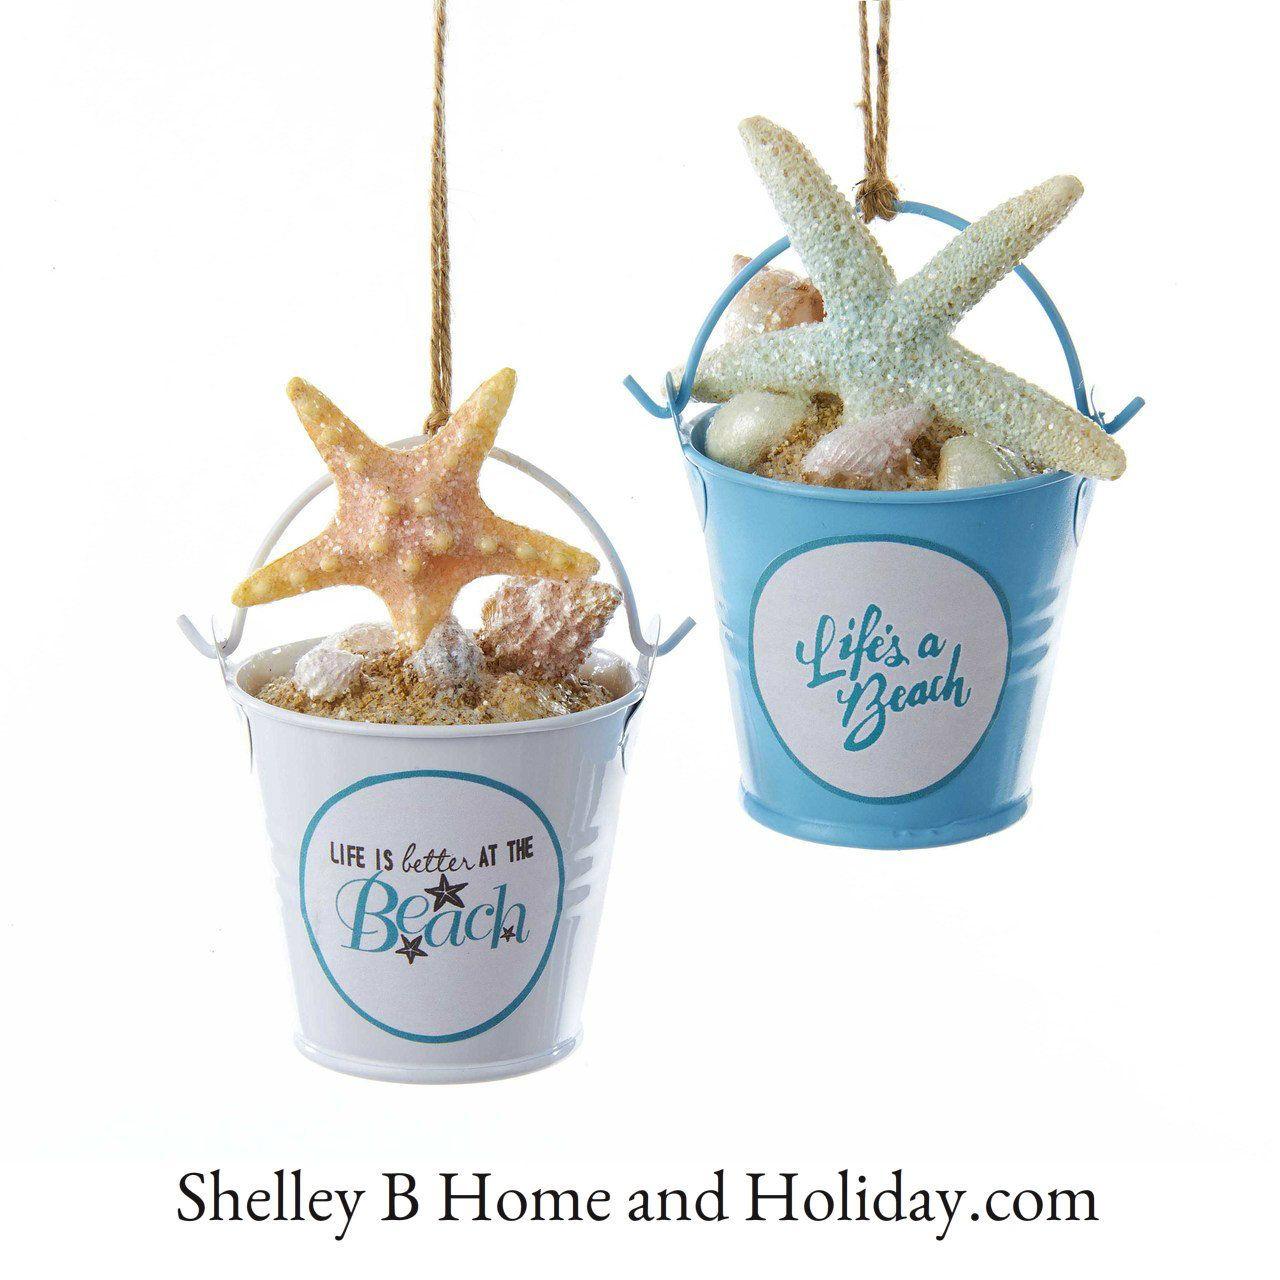 Anchor ornaments - Decorate A Beach Themed Christmas Tree With Sand Bucket Starfish Fish Sail Boat Bucket Ornamentsanchor